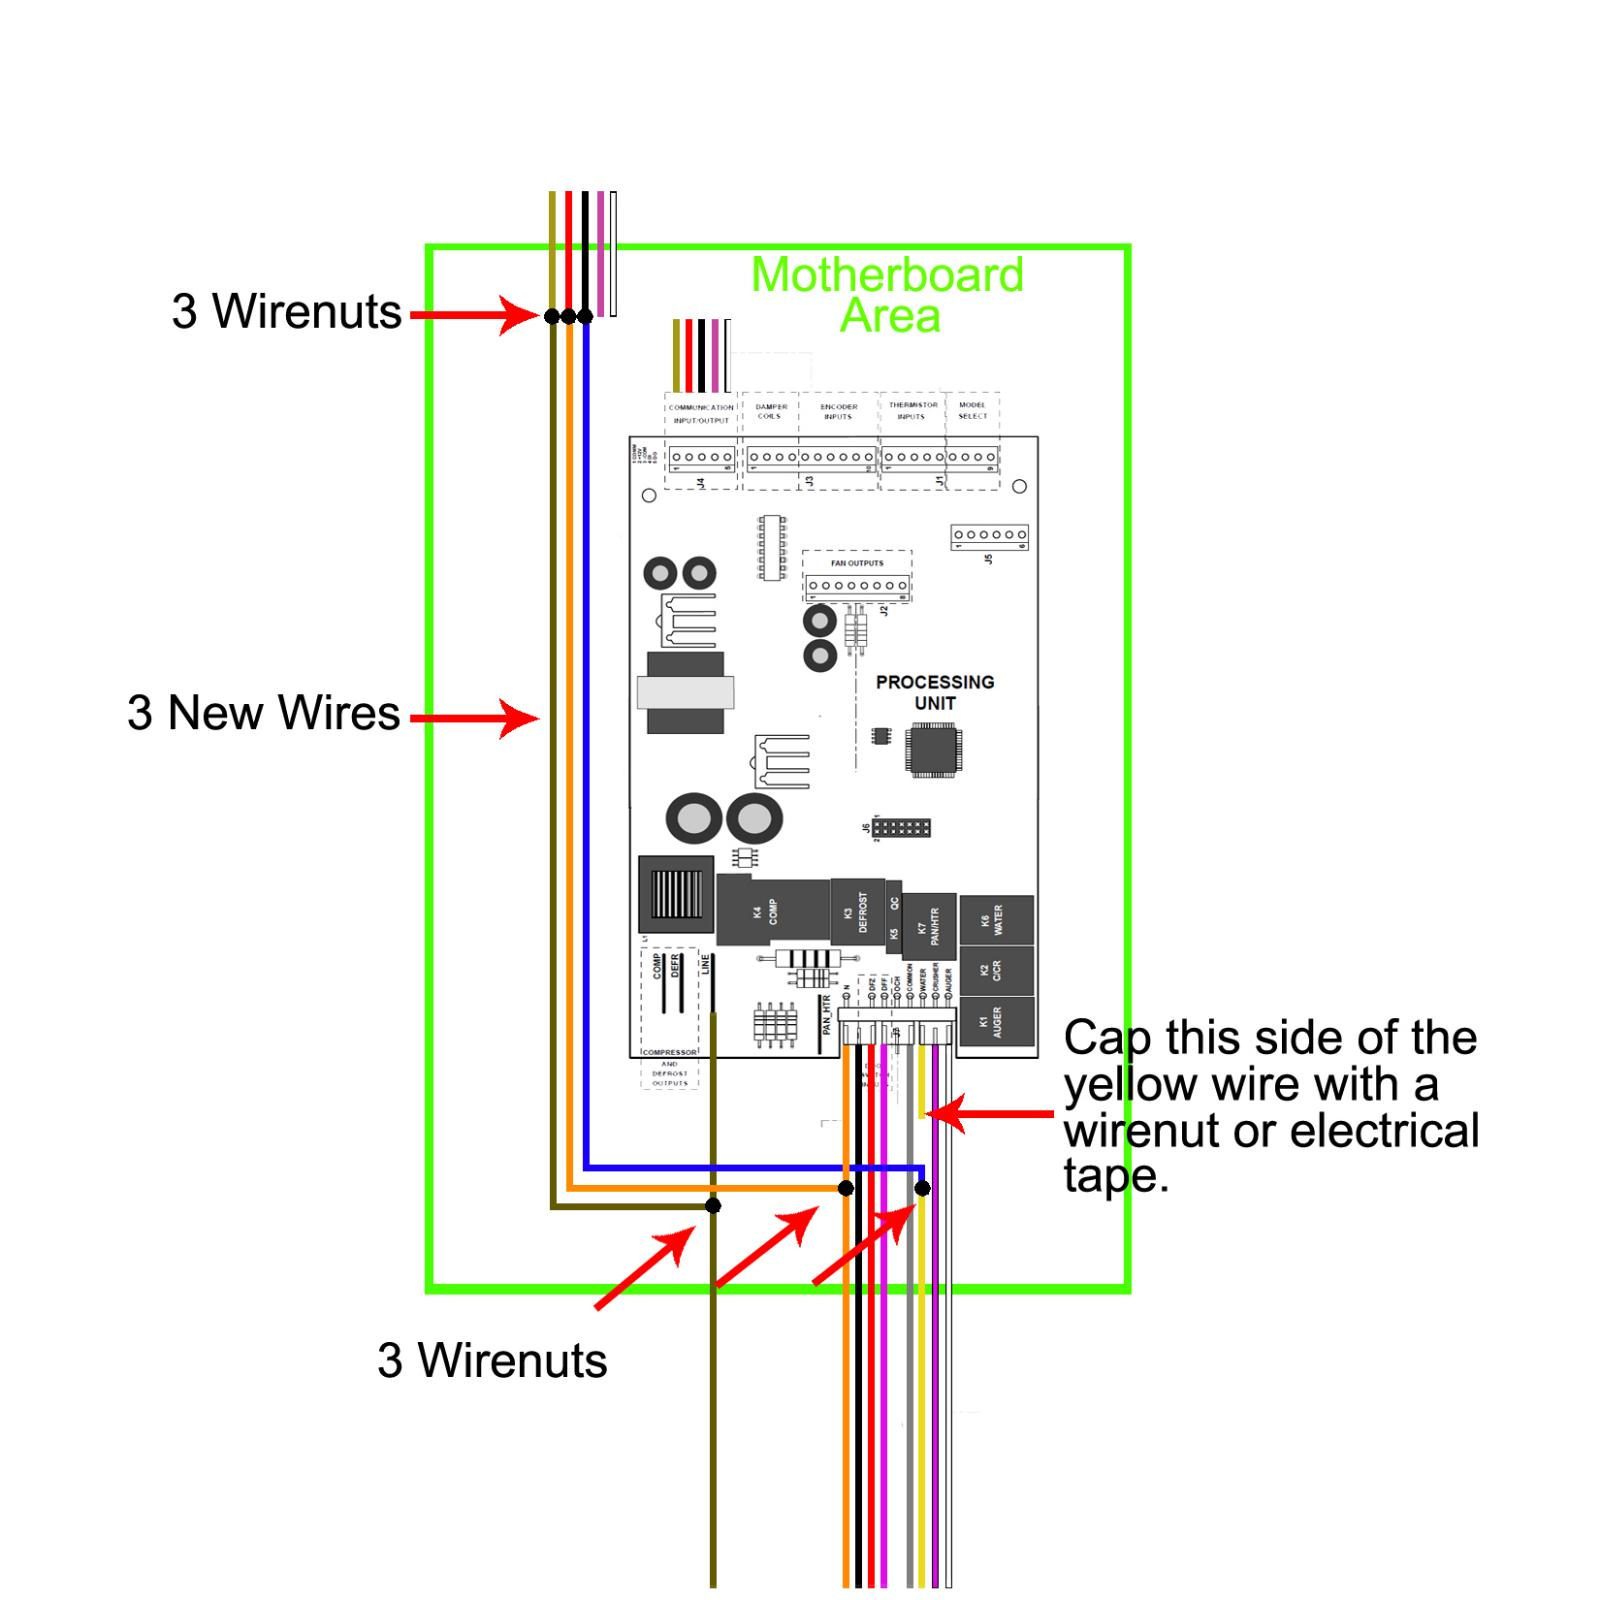 Wiring Help Please Side By Fermentation Kegerator Diagram As Well Stc 1000 On Desk Lamp Motherboard Area Connections Kgmac311